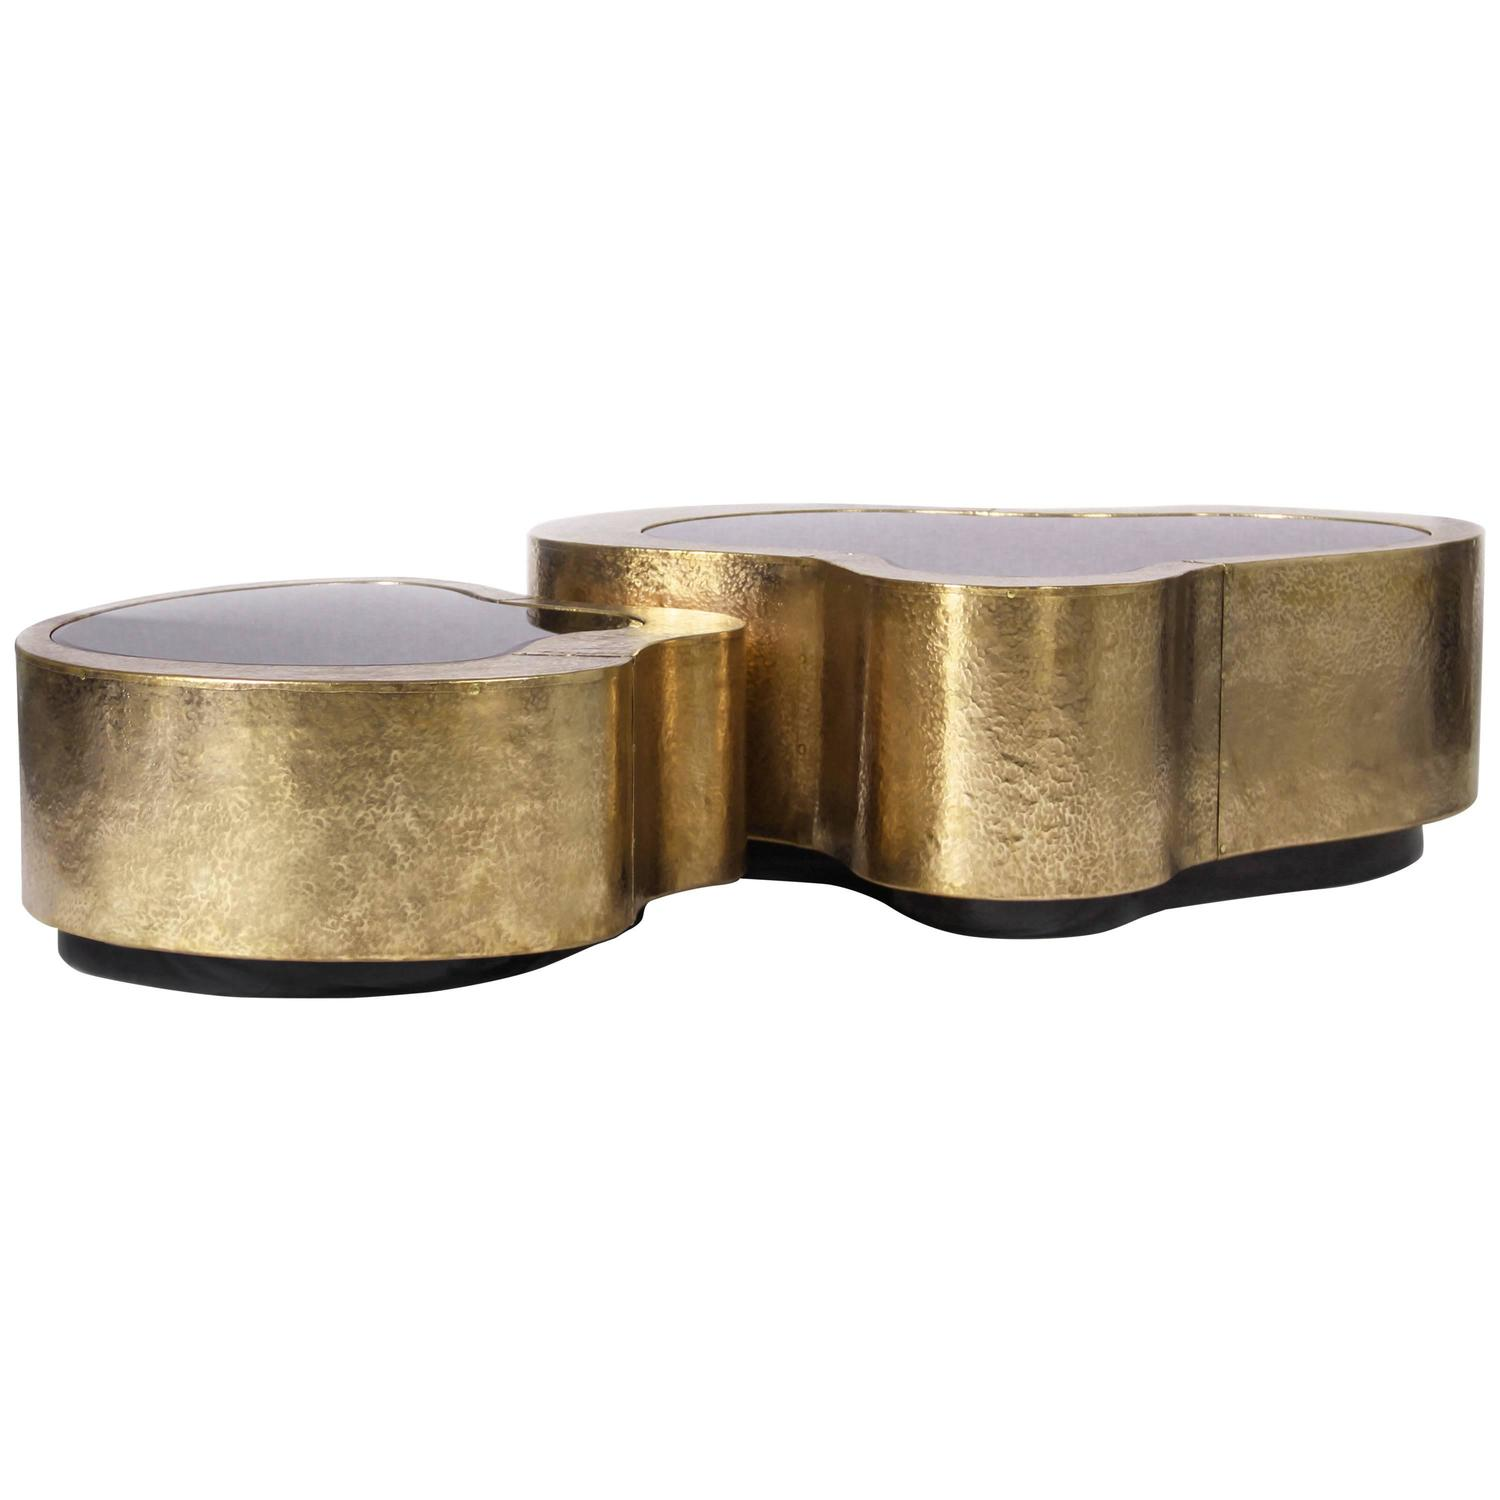 Superb Set Of Two Curvilinear Hammered Brass, Glass Center Coffee Tables From  Europe At 1stdibs